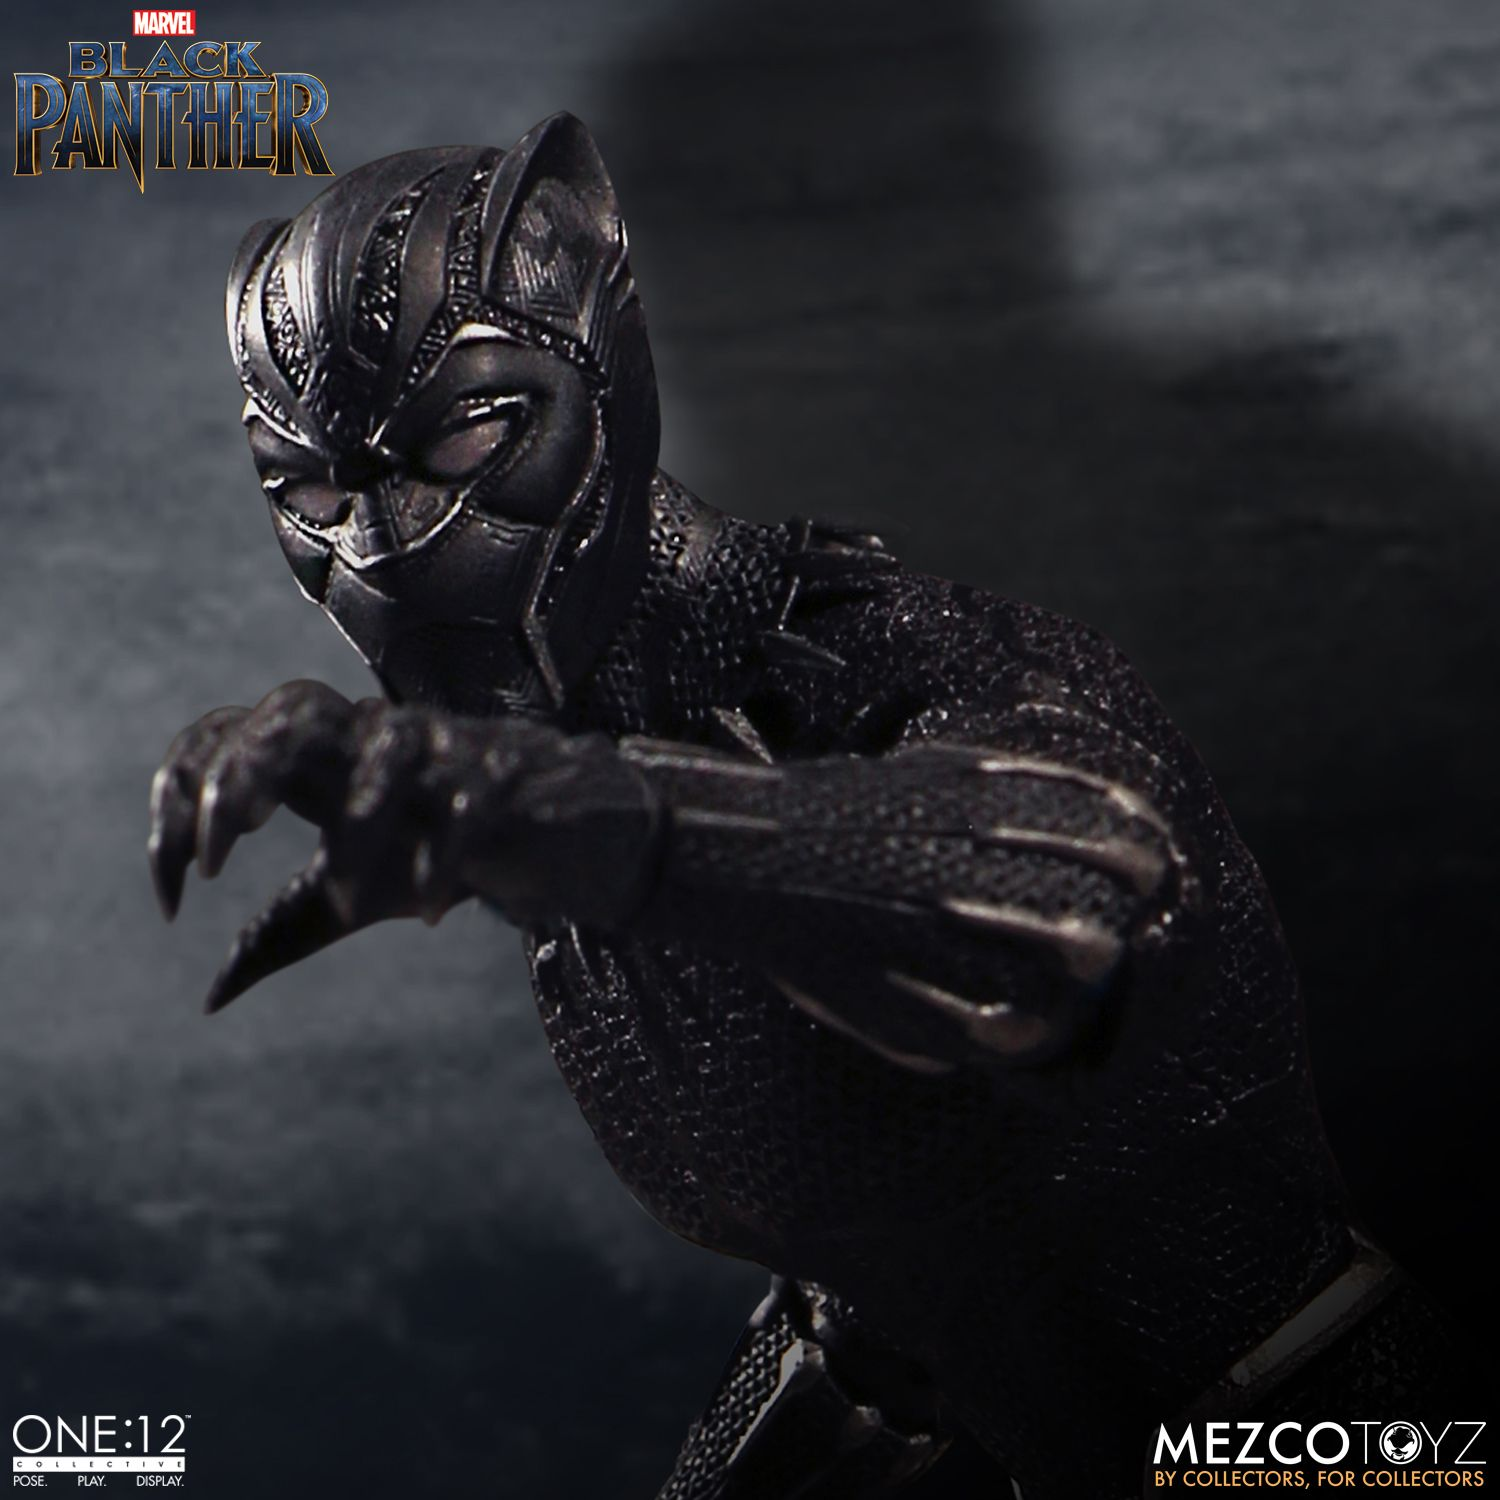 black panther mezco one 12 figure 2